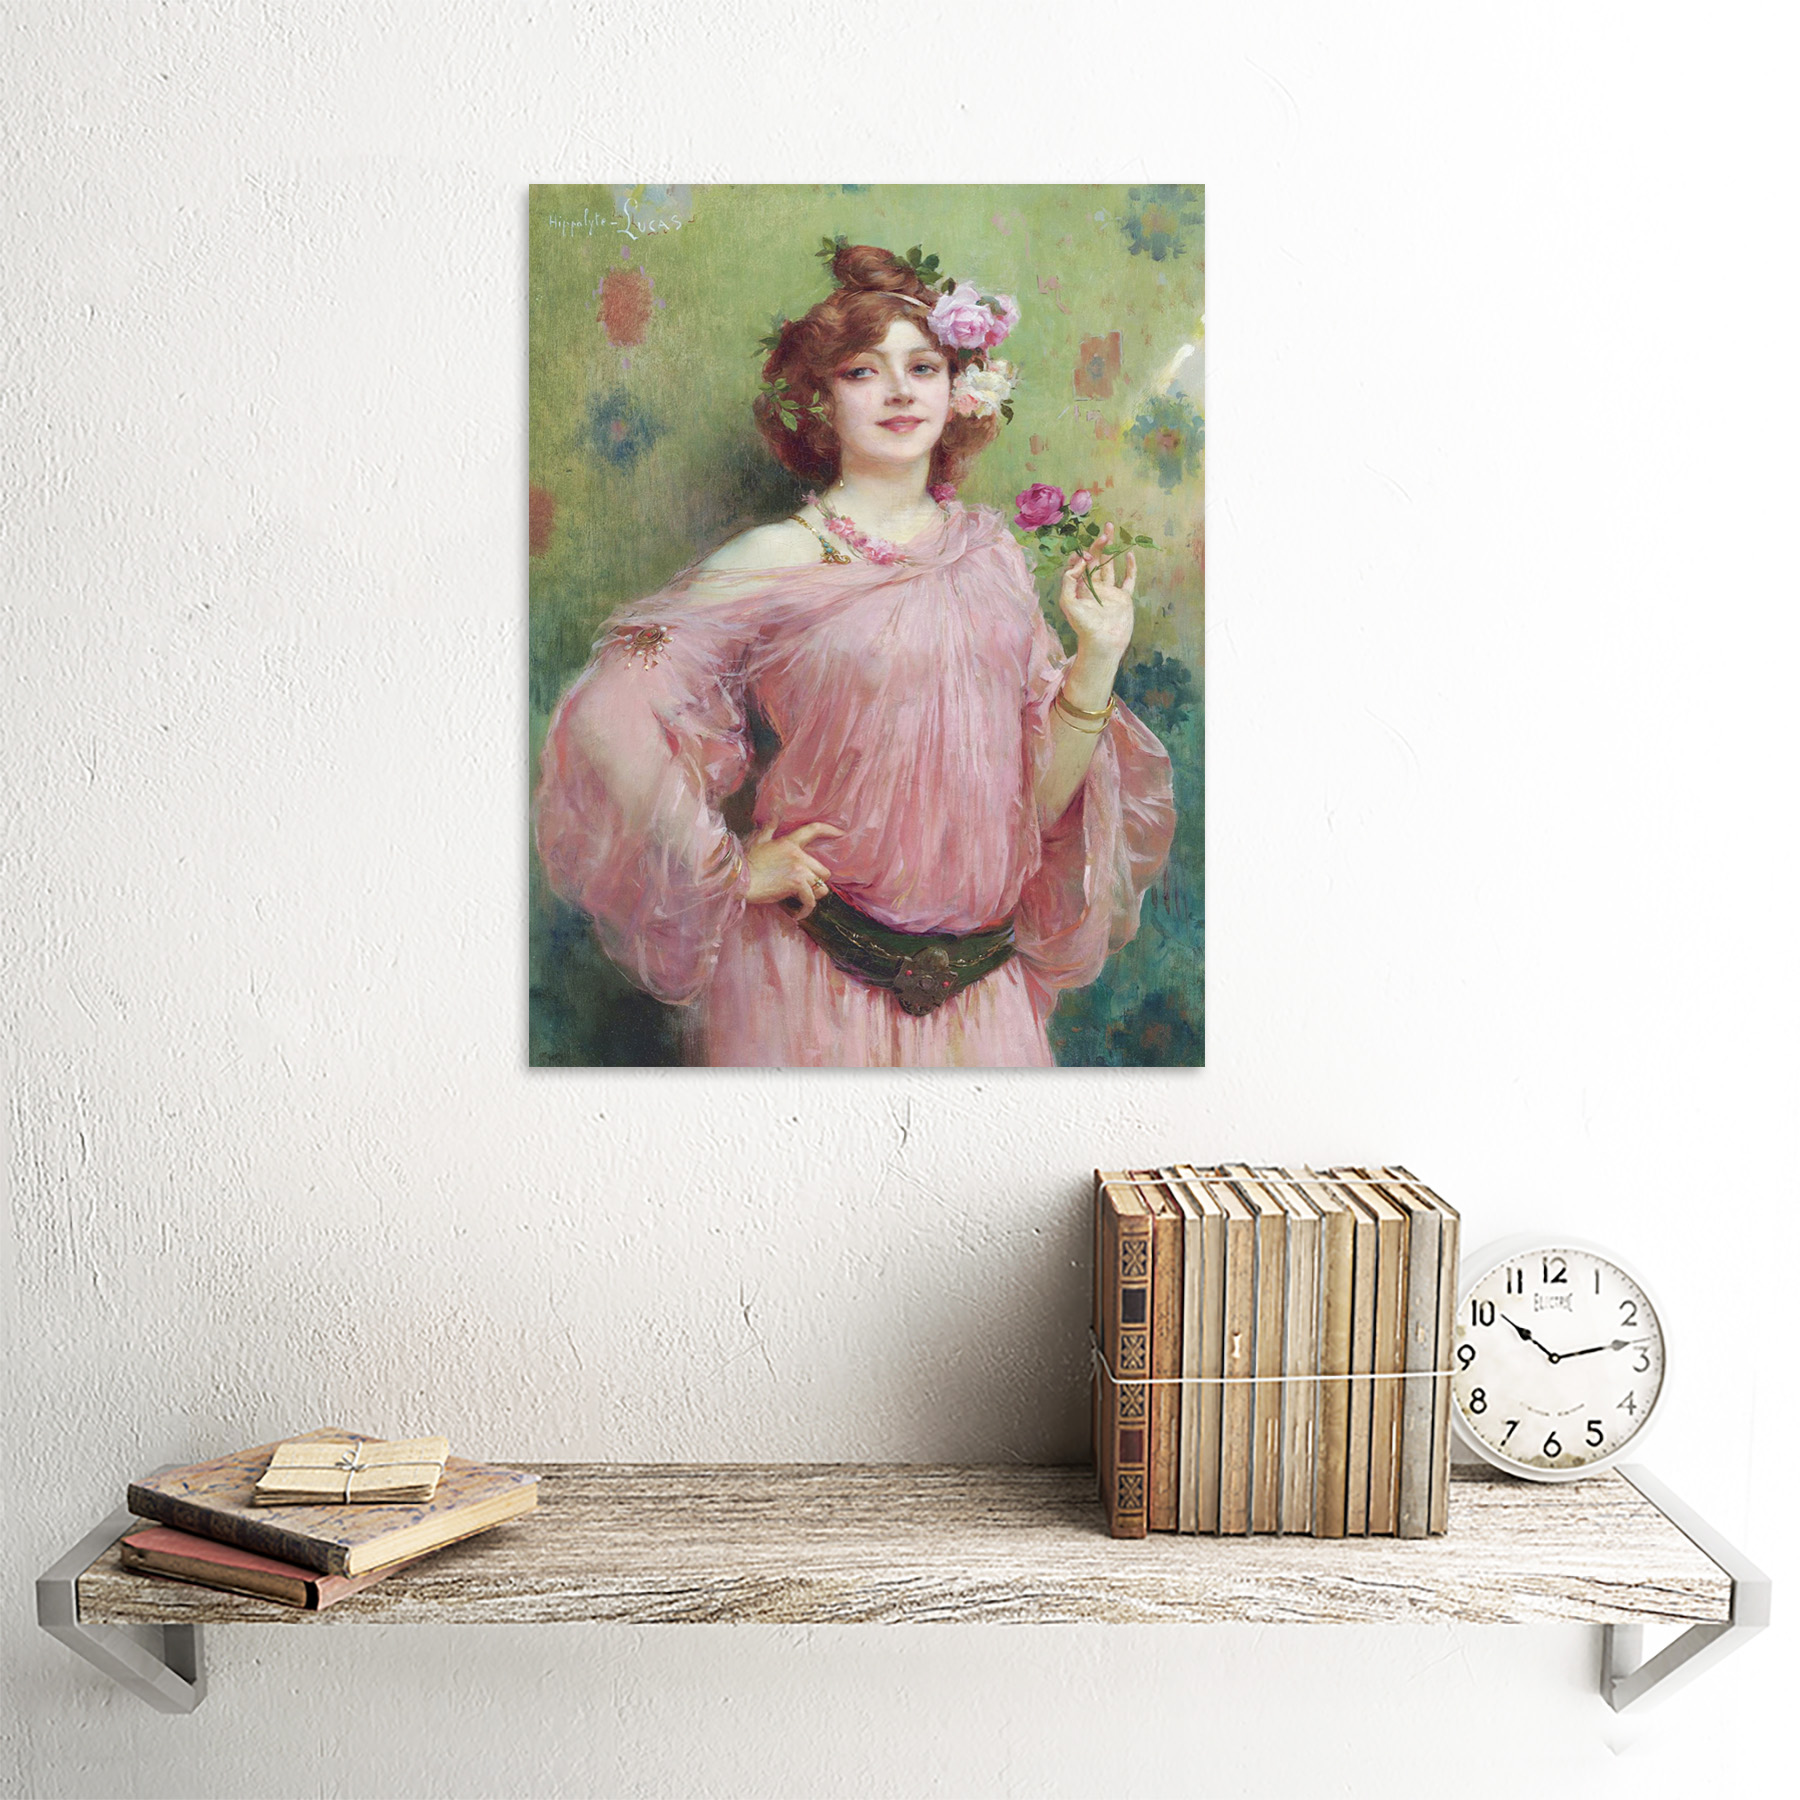 Hippolyte-Lucas-Beauty-In-Pink-Woman-Flowers-Painting-Art-Print-Framed-12x16 thumbnail 23